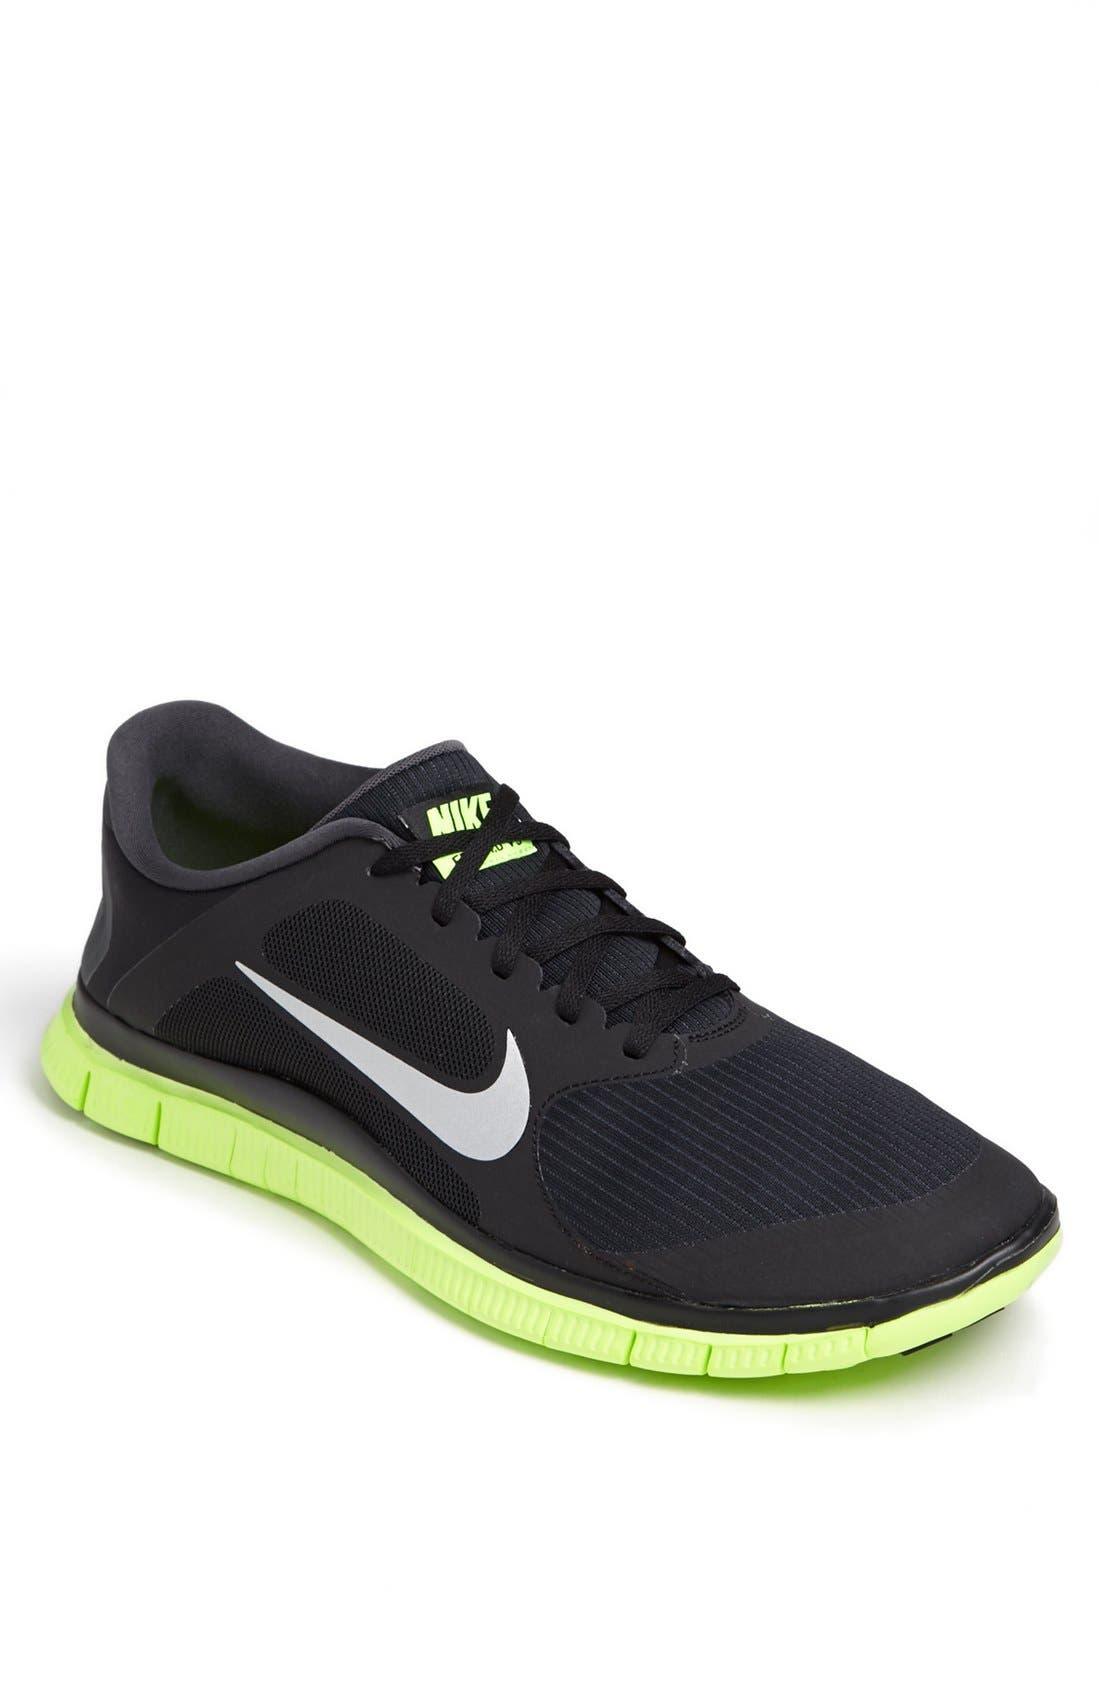 Alternate Image 1 Selected - Nike 'Free 4.0 V3' Running Shoe (Men)